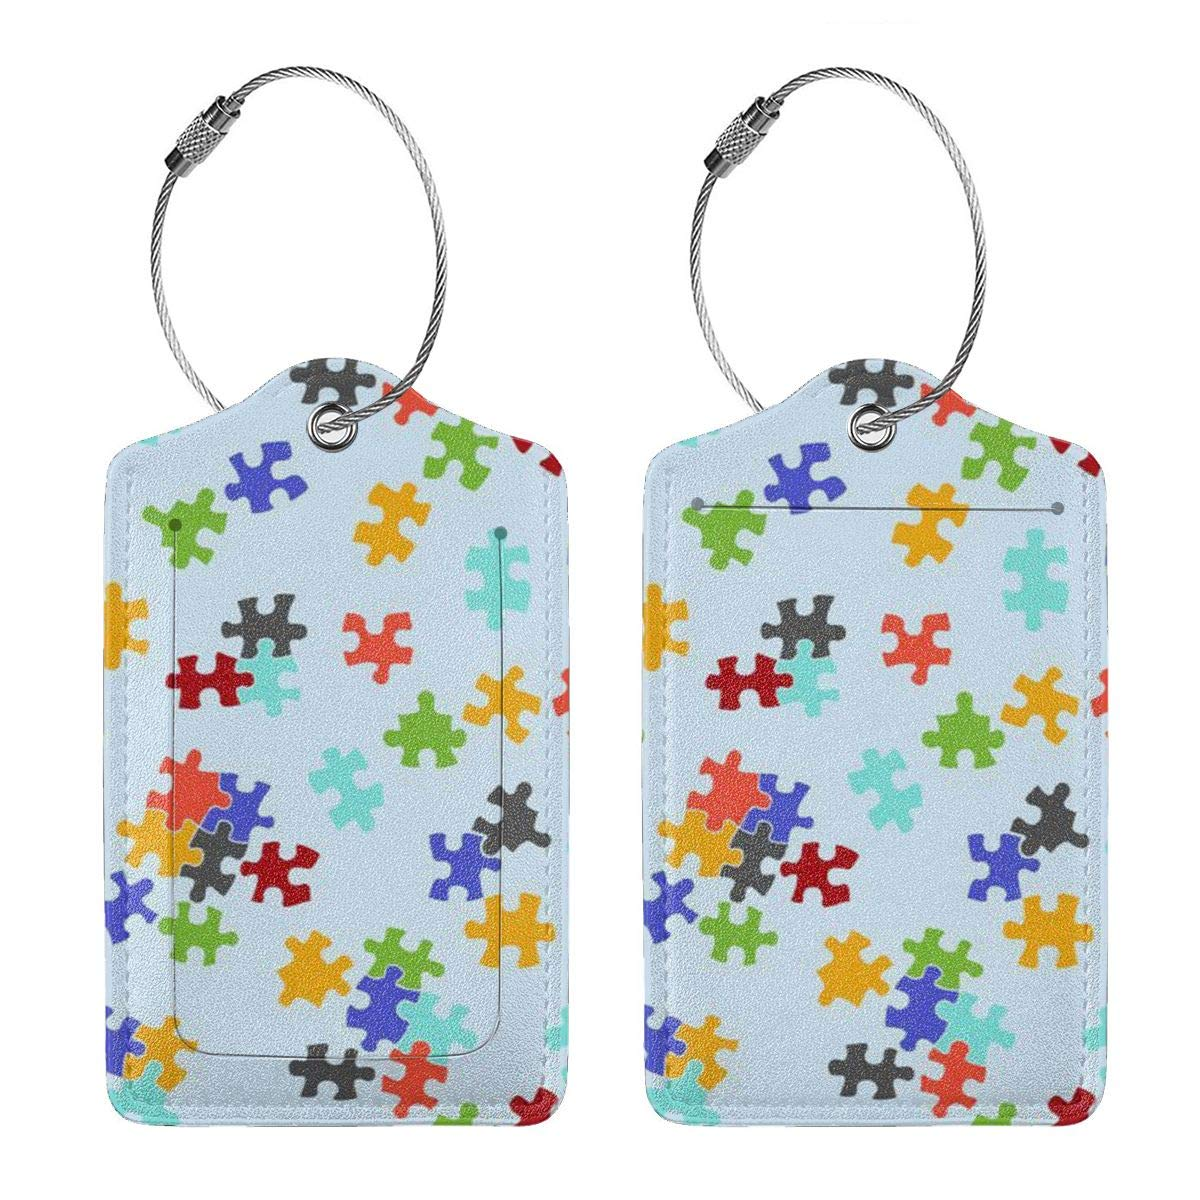 GoldK Autism Puzzle Leather Luggage Tags Baggage Bag Instrument Tag Travel Labels Accessories with Privacy Cover